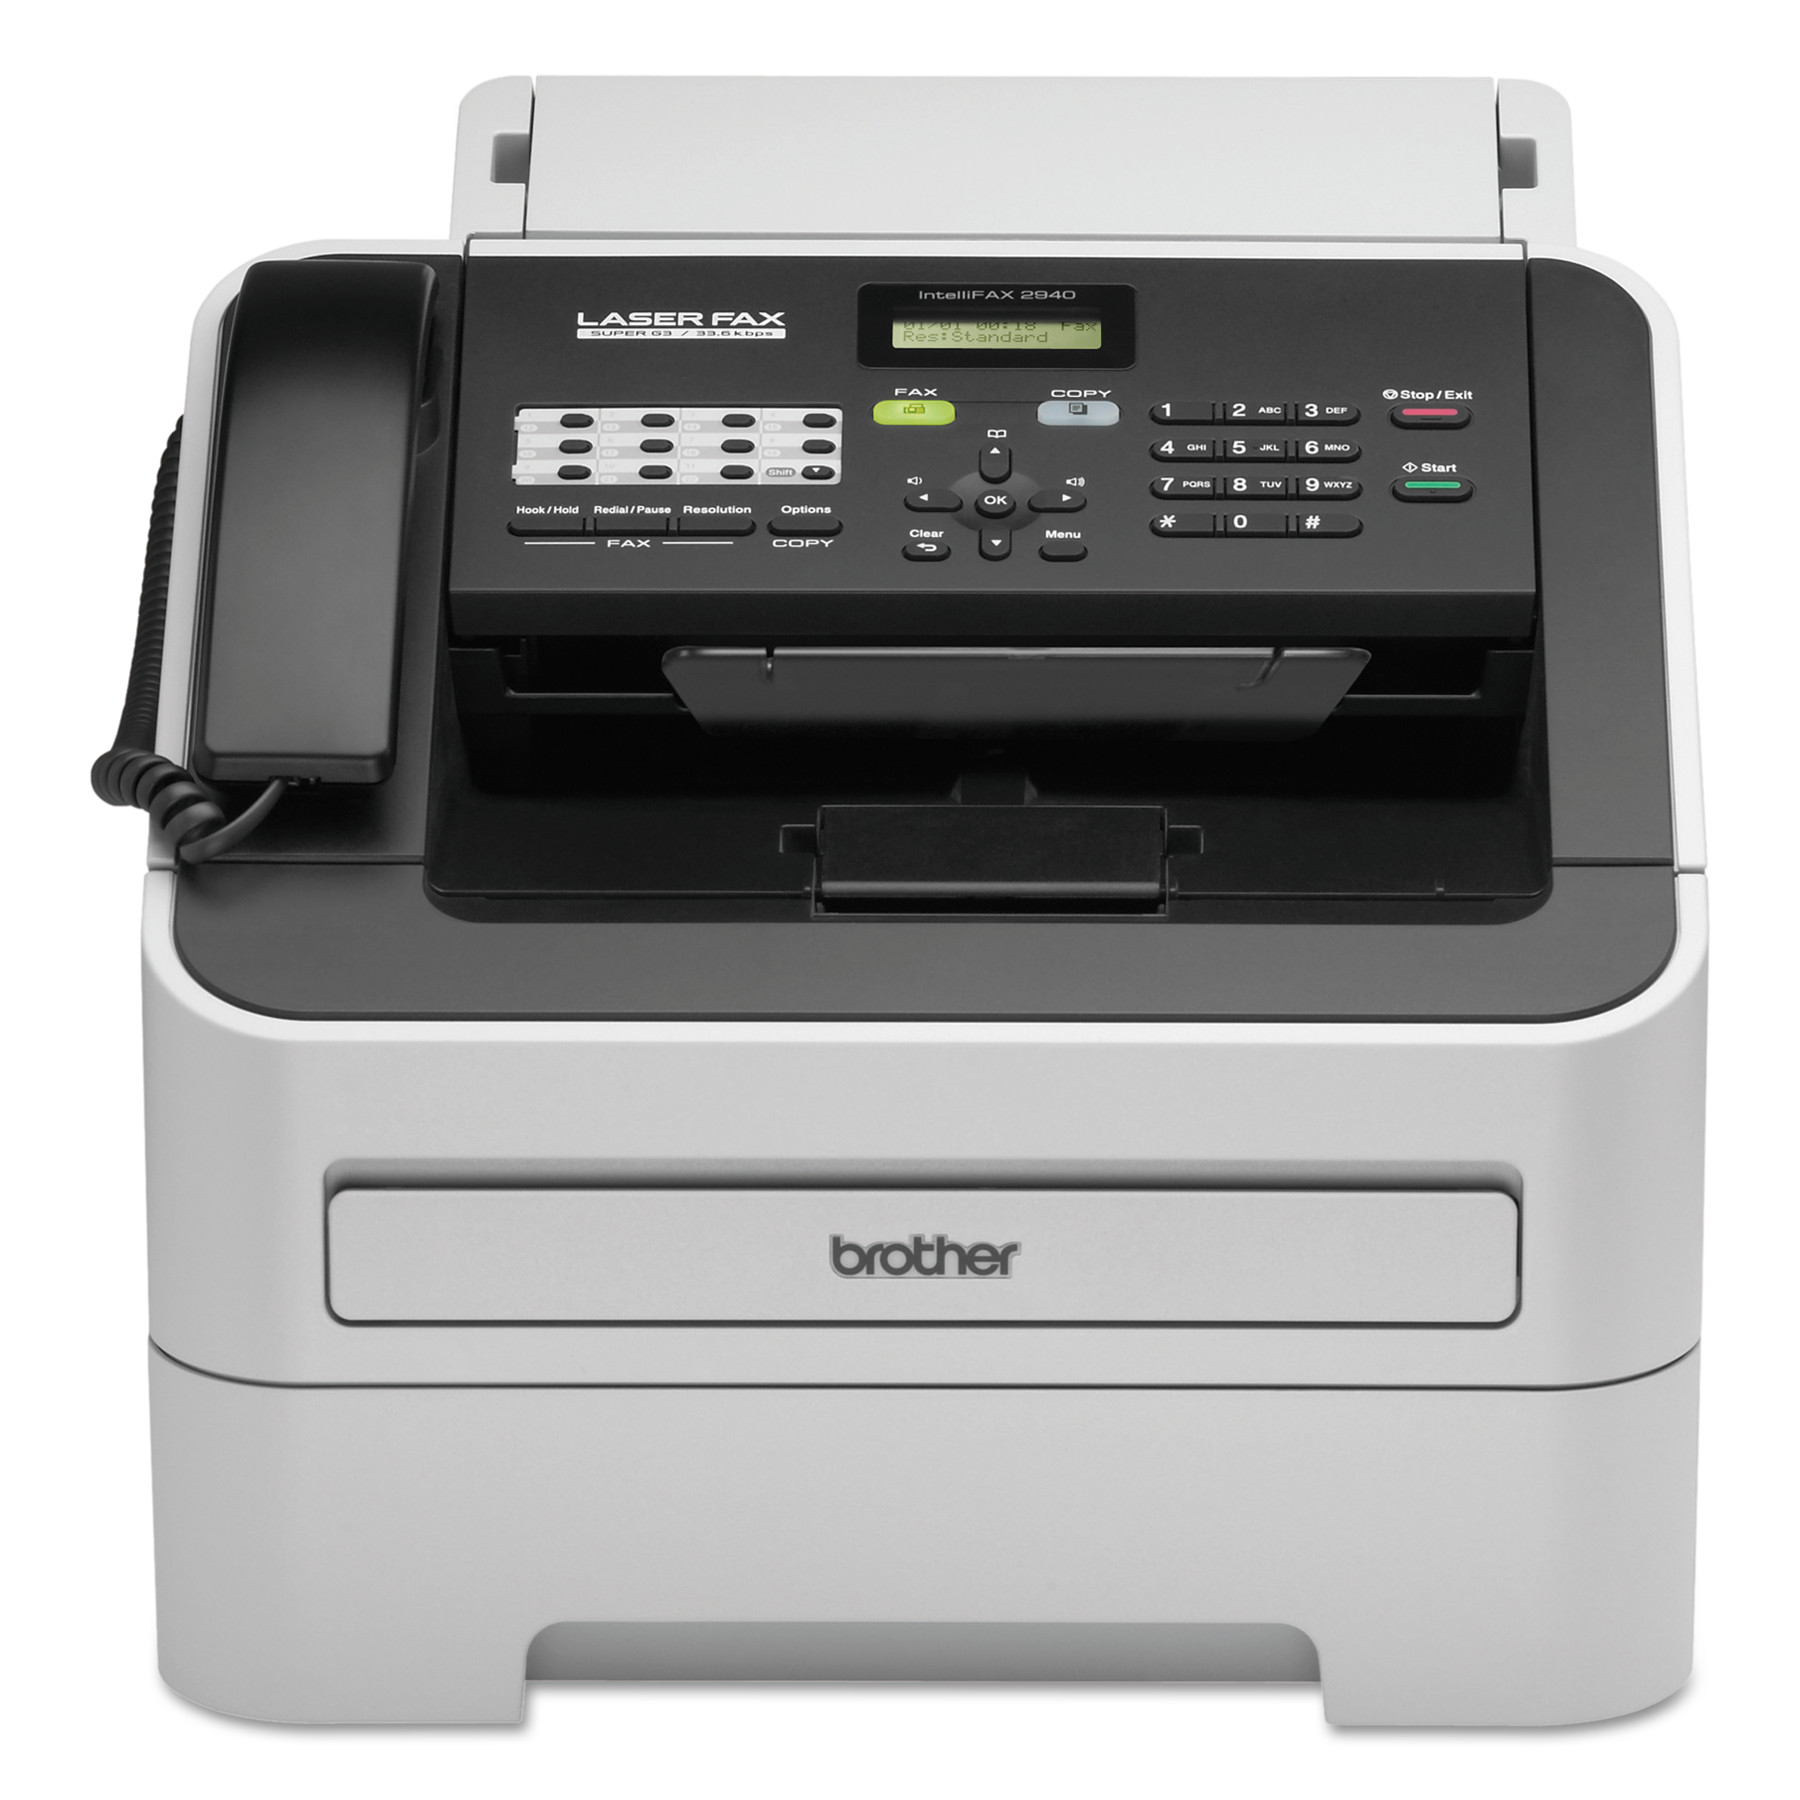 Brother intelliFAX-2940 Laser Fax Machine, Copy Fax Print by Brother